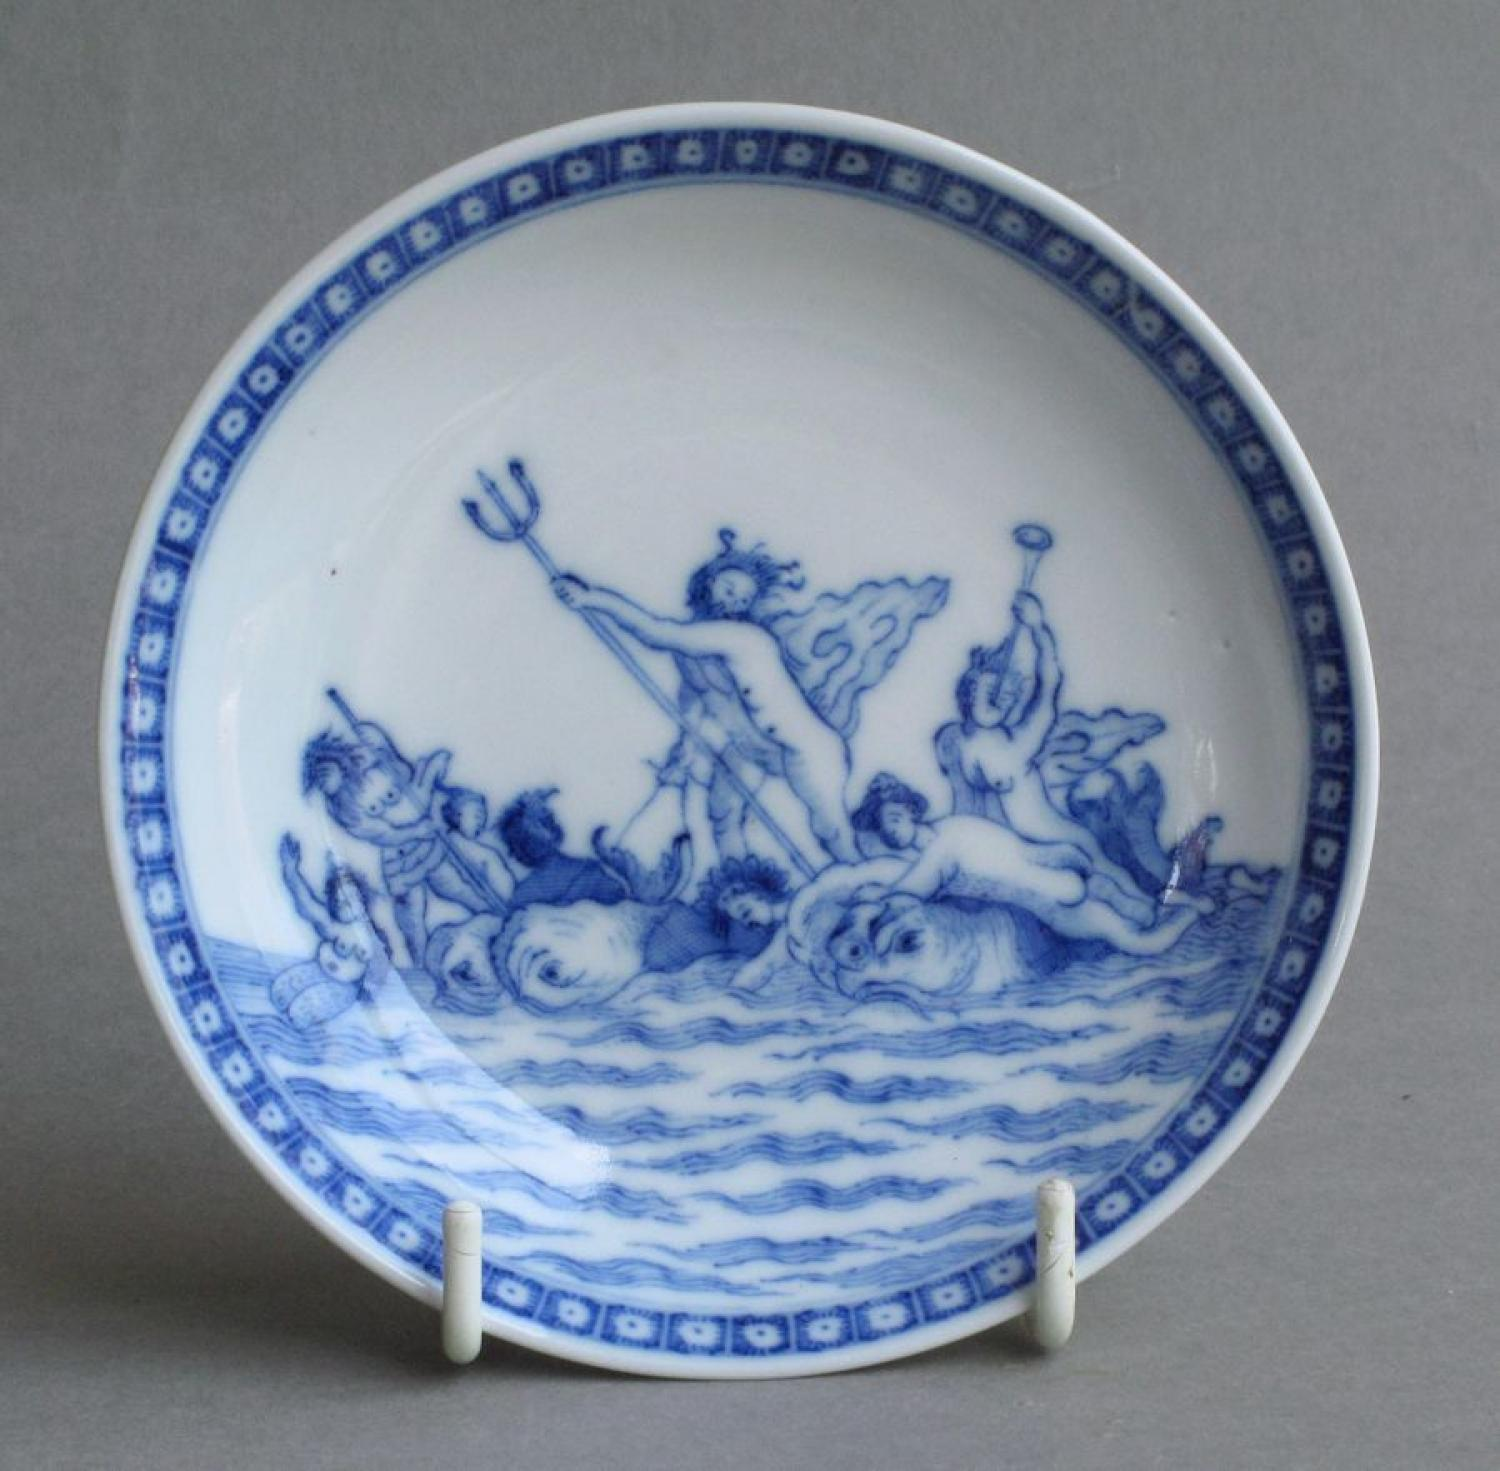 A Chinese export mythological scene saucer